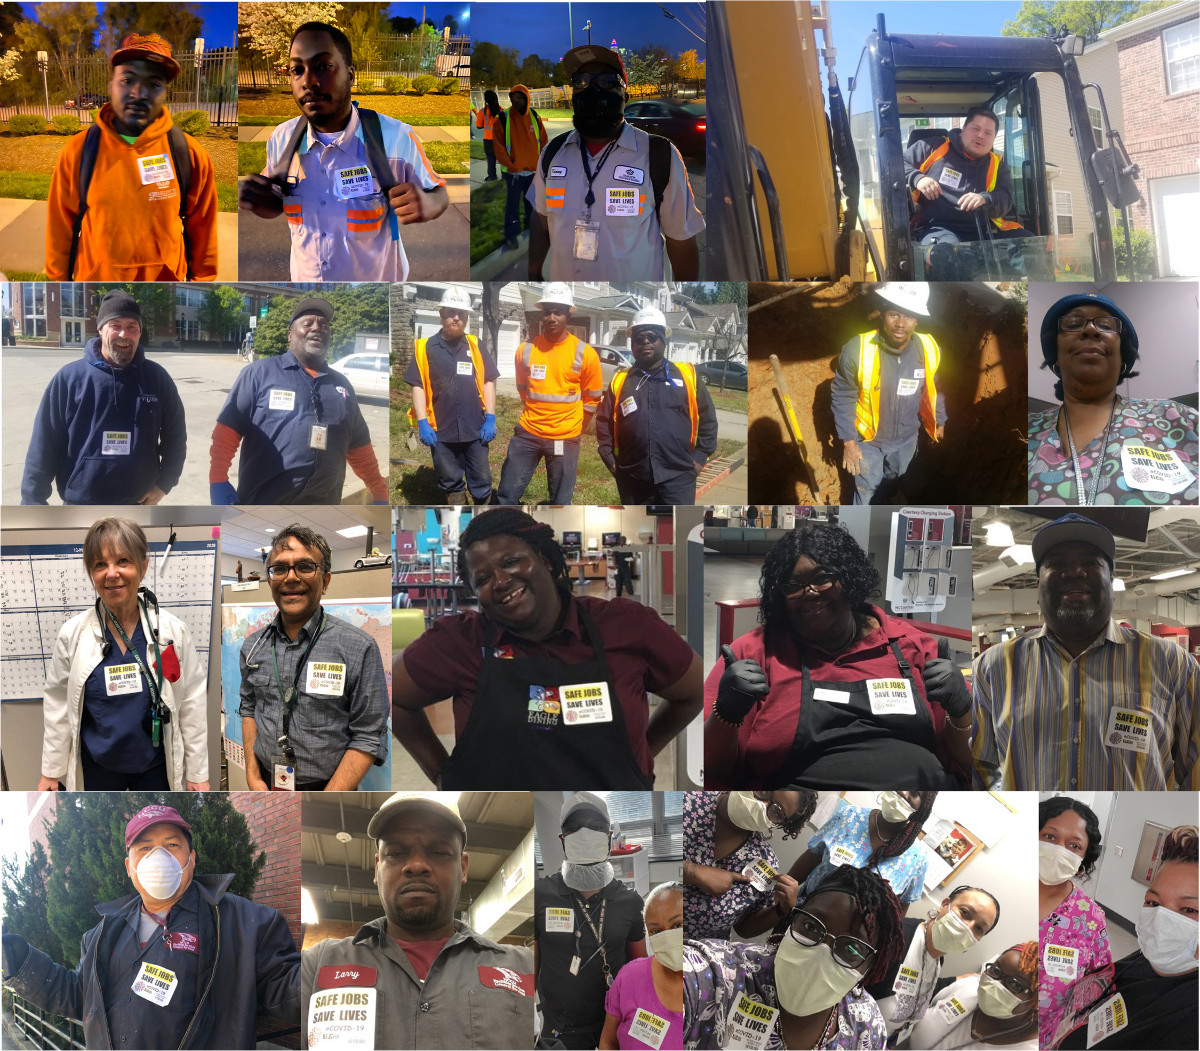 Montage of photos of workers wearing Safe Jobs Save Lives stickers